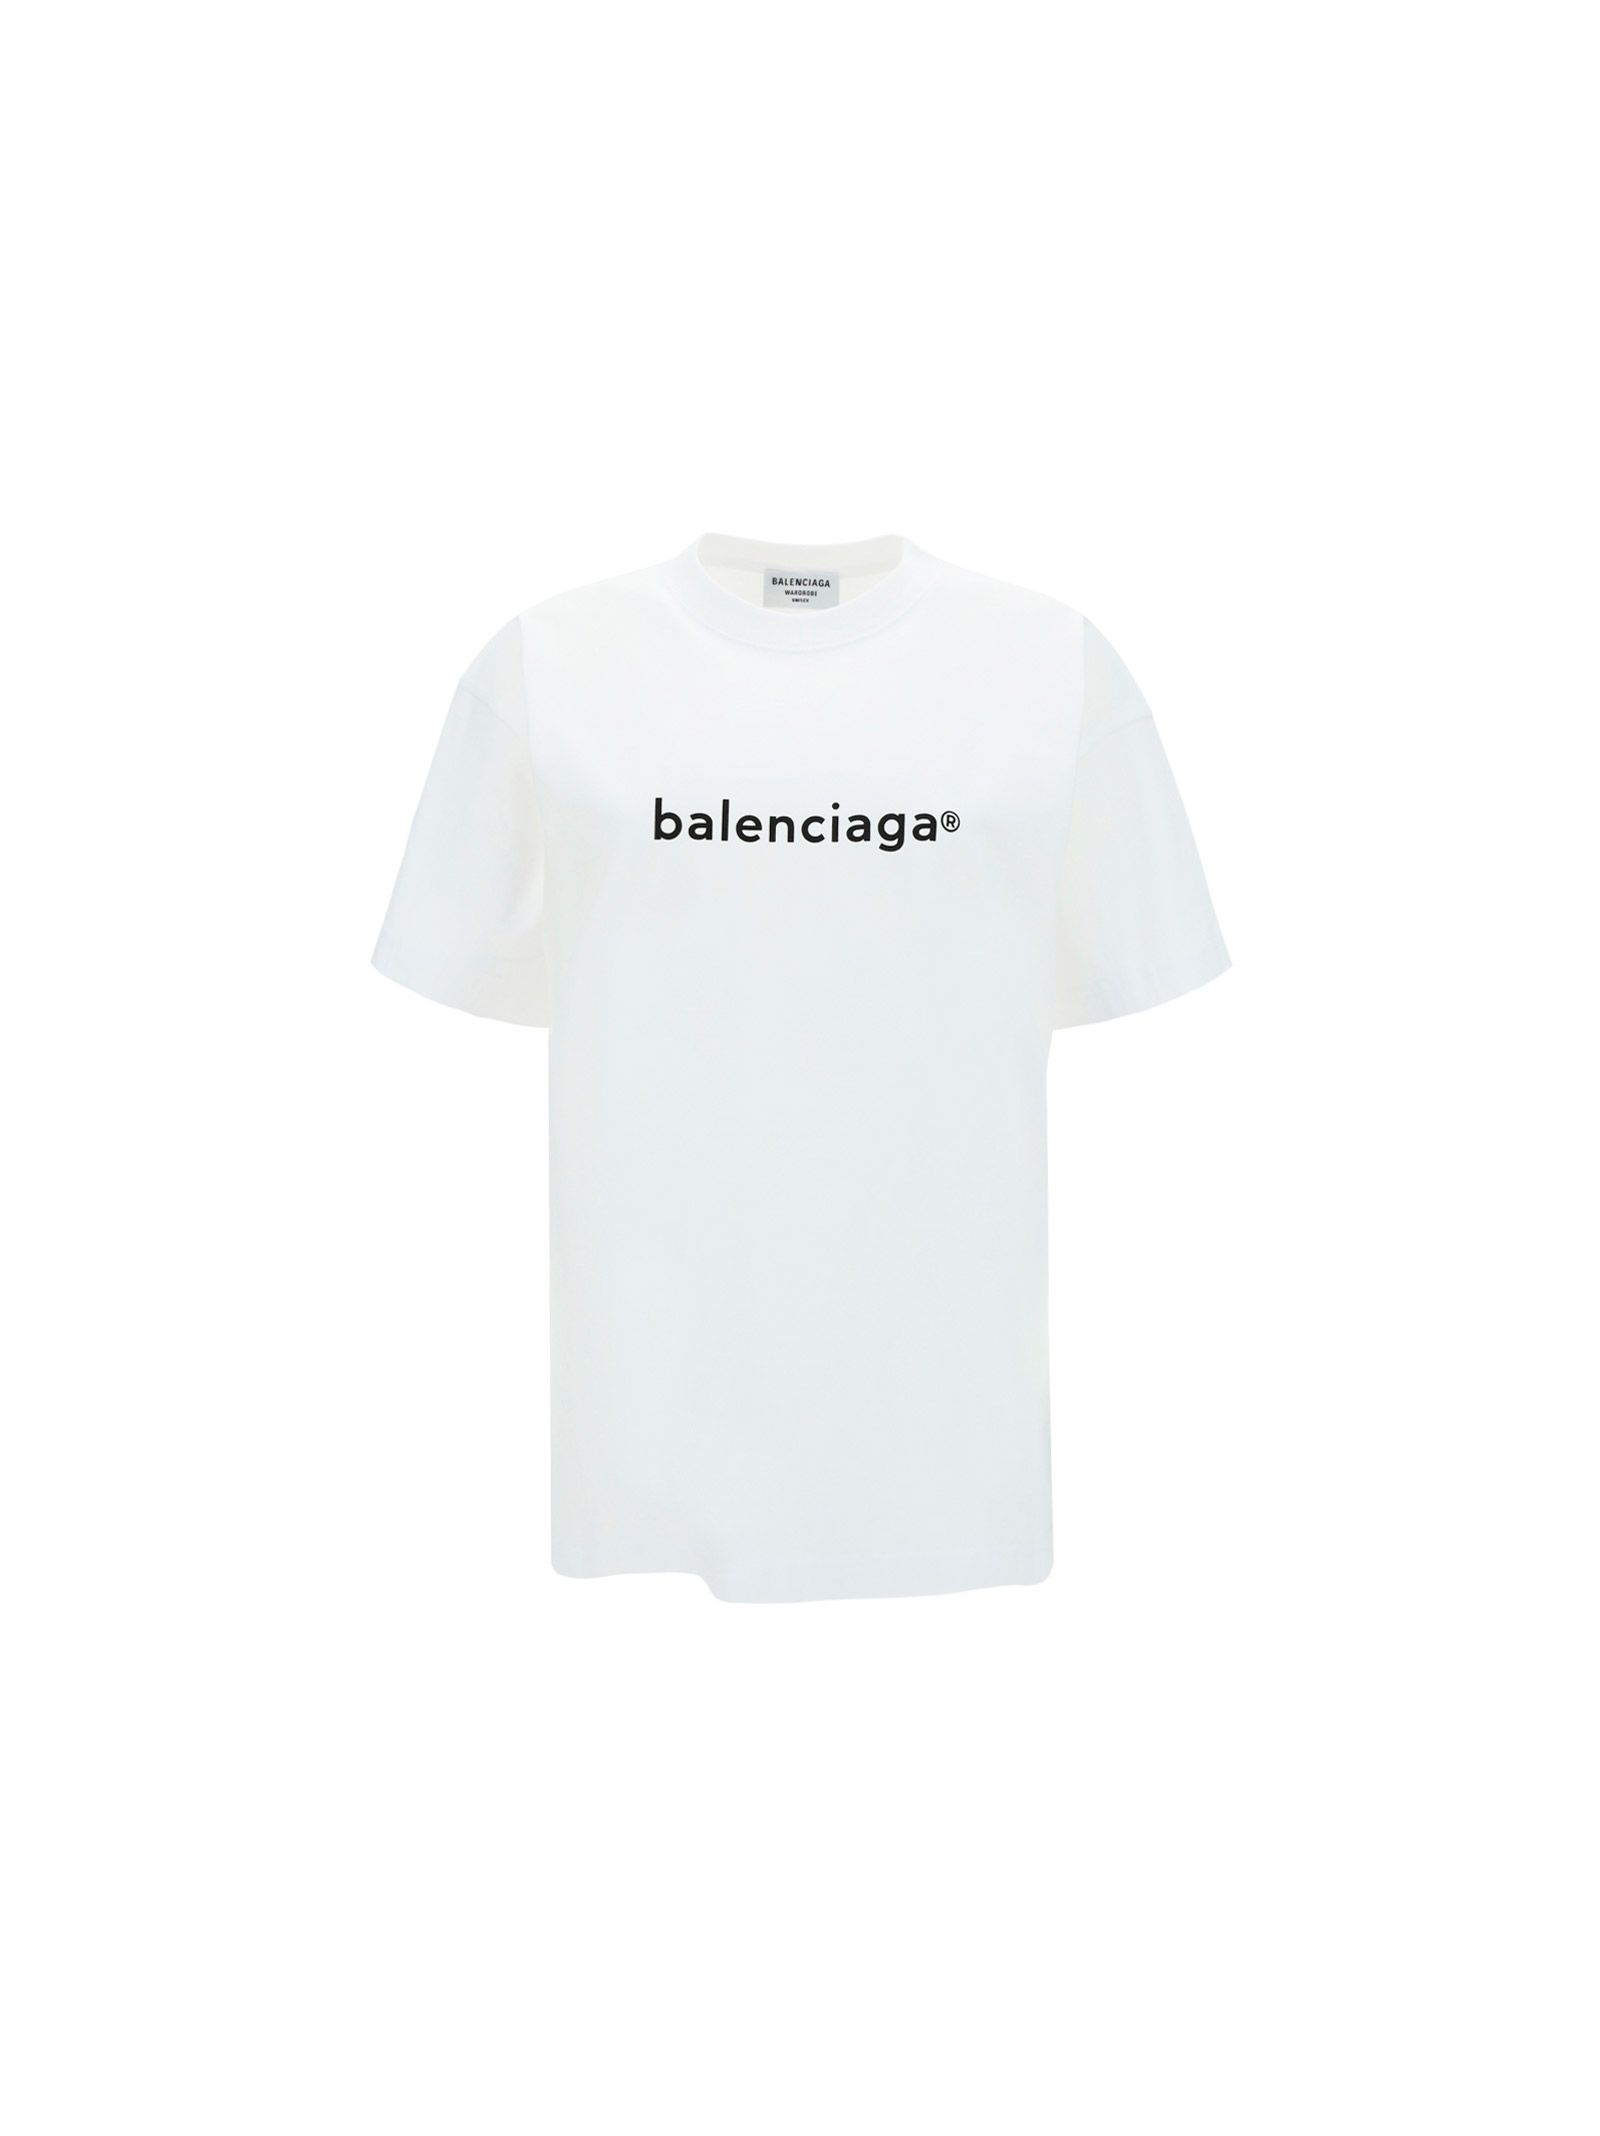 Balenciaga Cottons BALENCIAGA WOMEN'S WHITE OTHER MATERIALS T-SHIRT